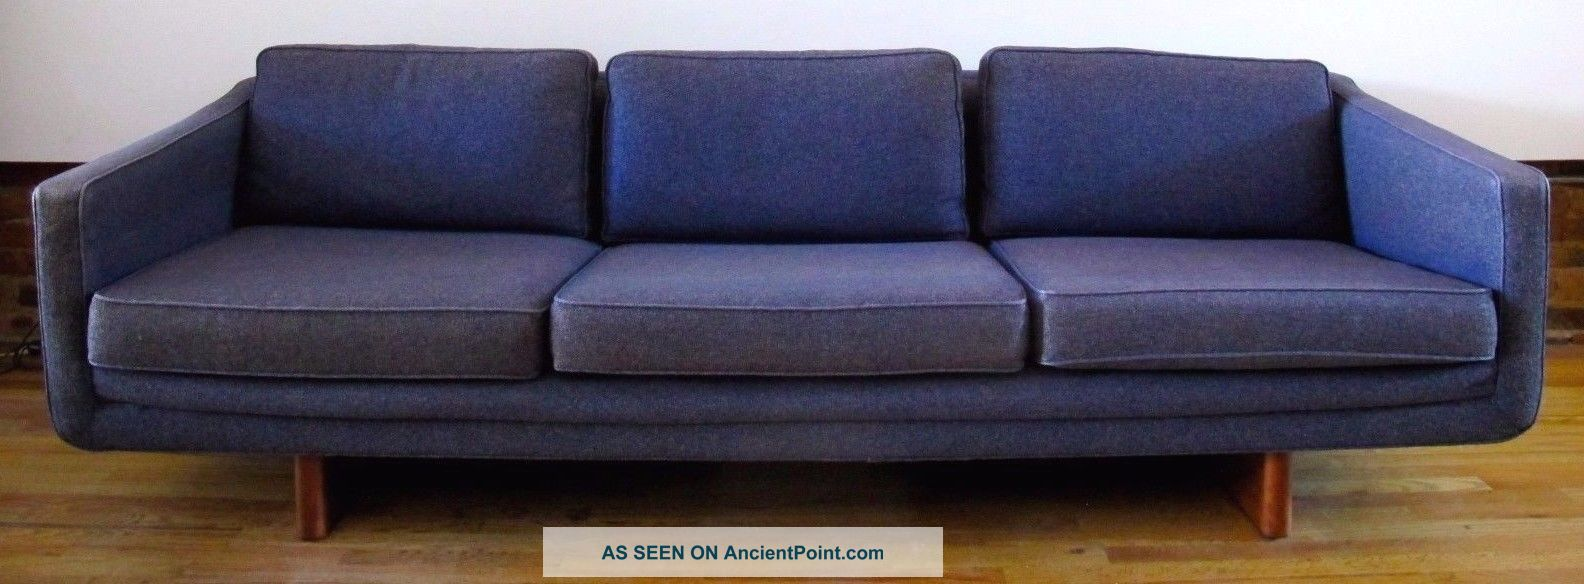 Mid Century Adrian Pearsall Style 7 1/2 Ft Sofa By Armstrong Modern Post-1950 photo